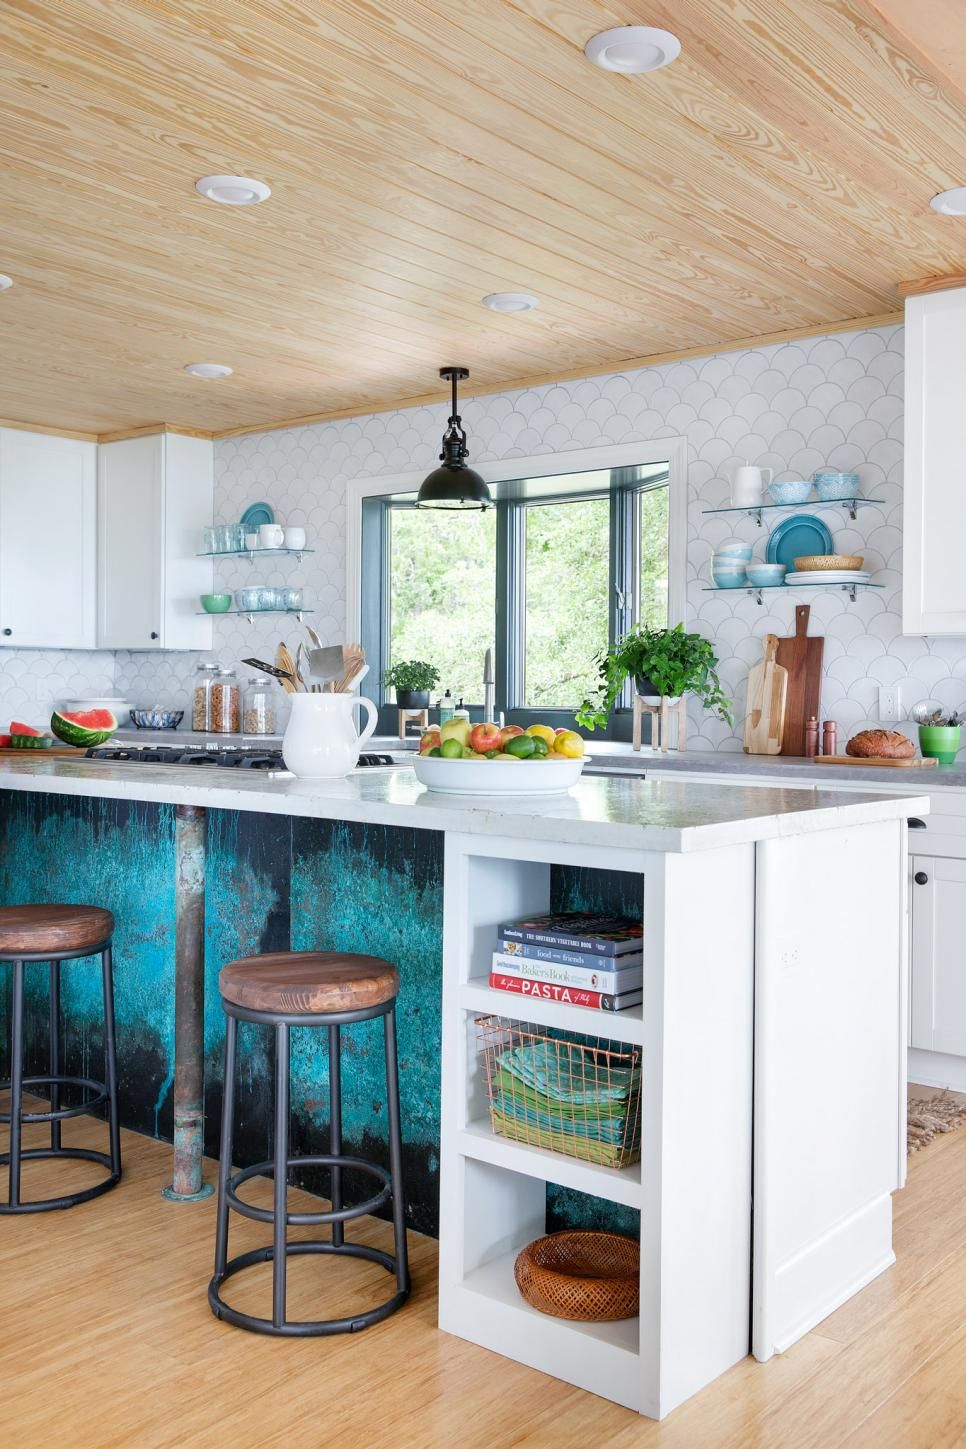 Inside The Diy Network S Blog Cabin Kitchen Kitchen Kuche